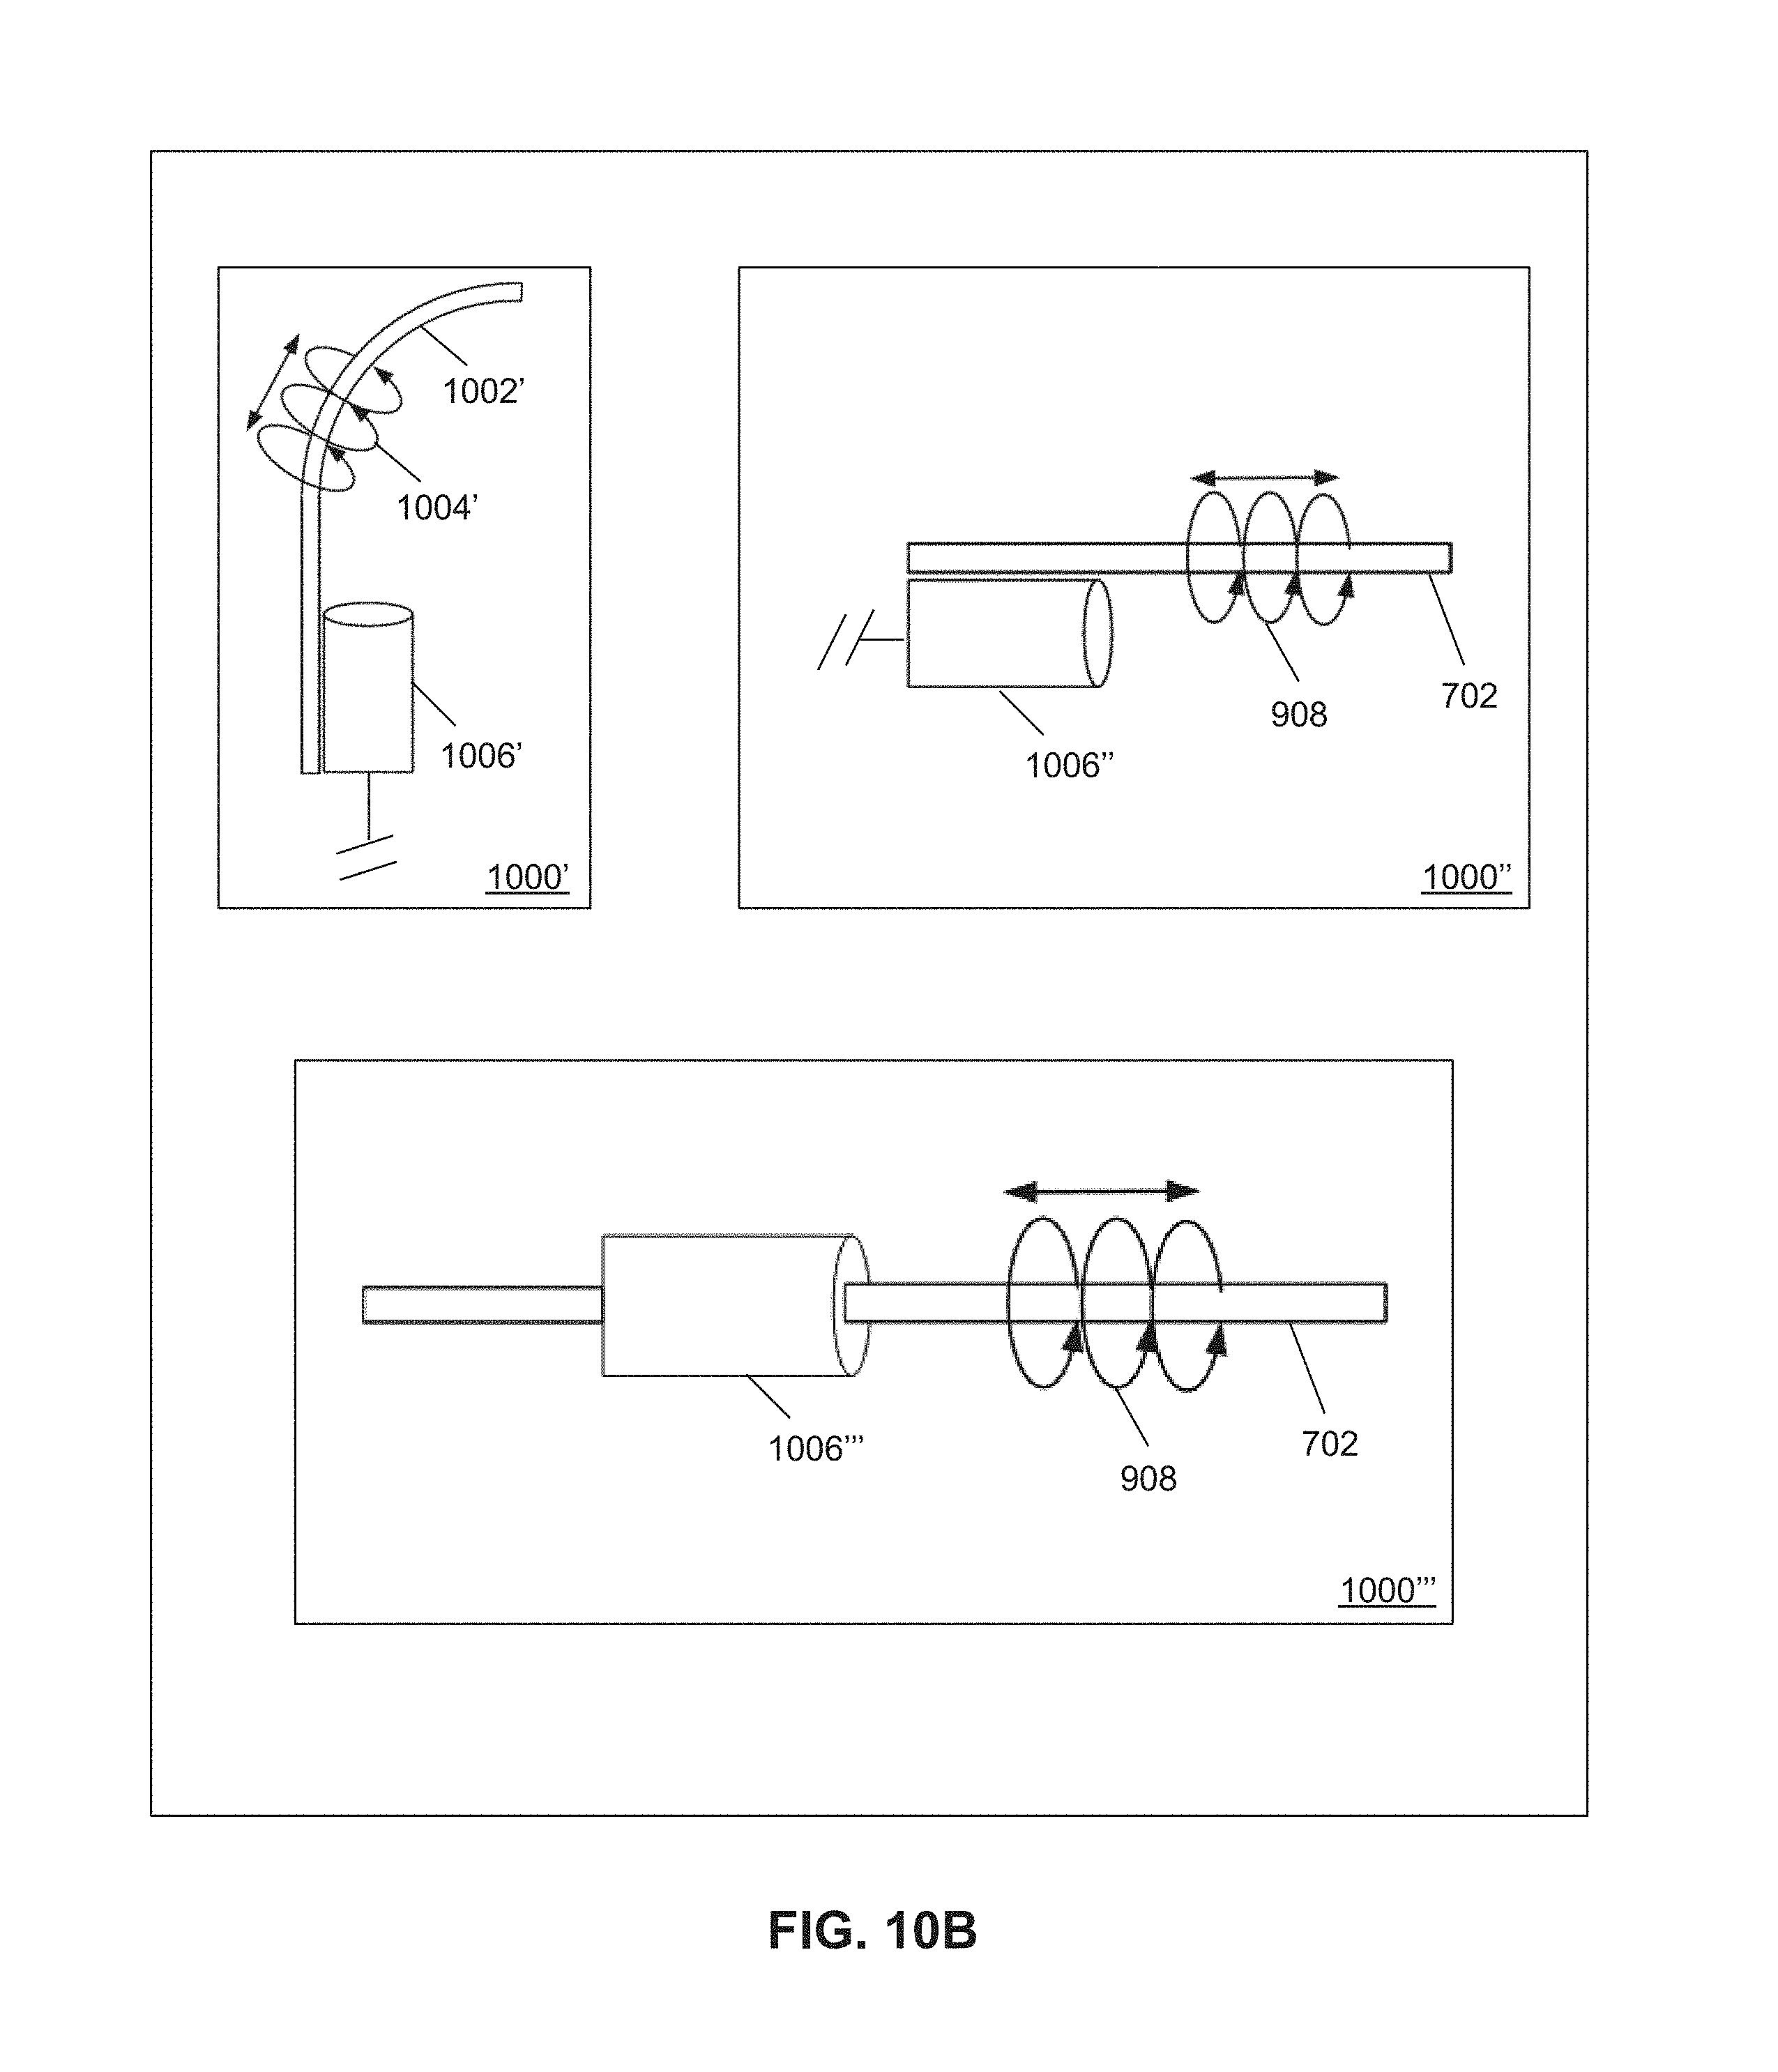 Patent Us 10009901 B2 Solid State Relay Schematic Symbol Panasonic Electric Works